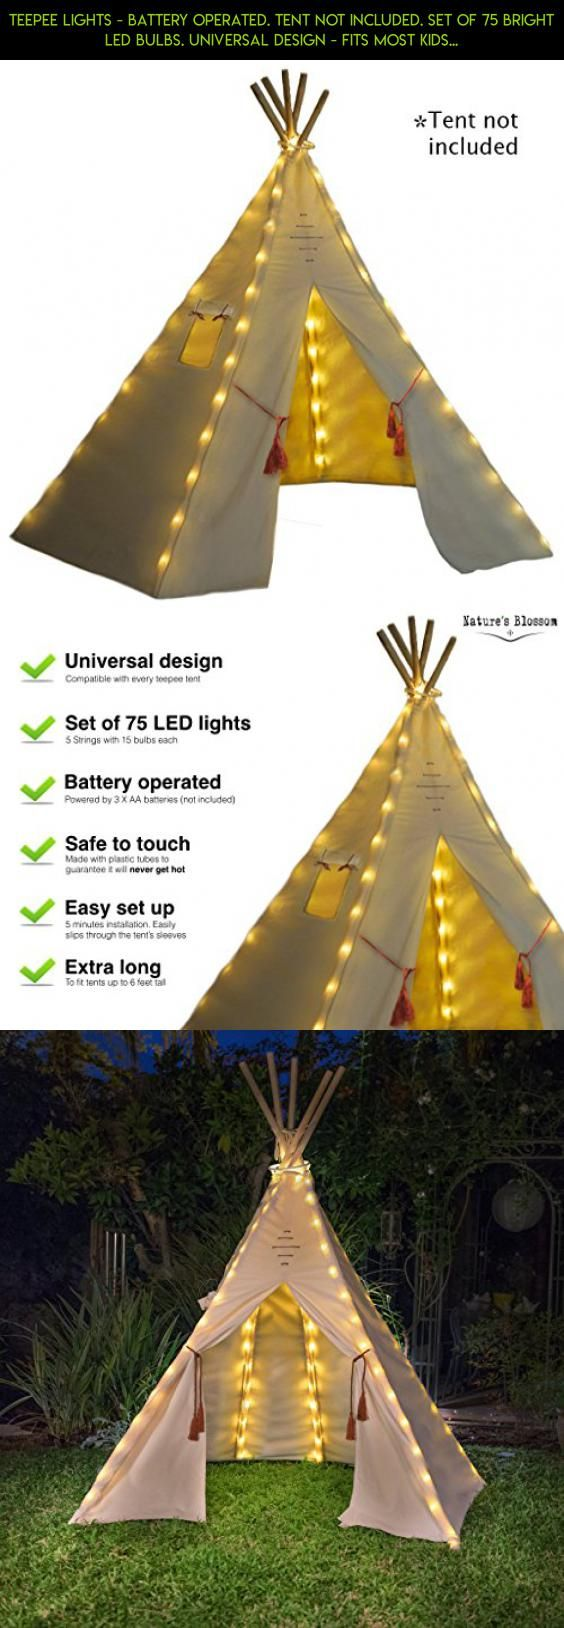 Teepee Lights - Battery Operated. TENT NOT INCLUDED. Set of 75 Bright LED Bulbs & Teepee Lights - Battery Operated. TENT NOT INCLUDED. Set of 75 ...